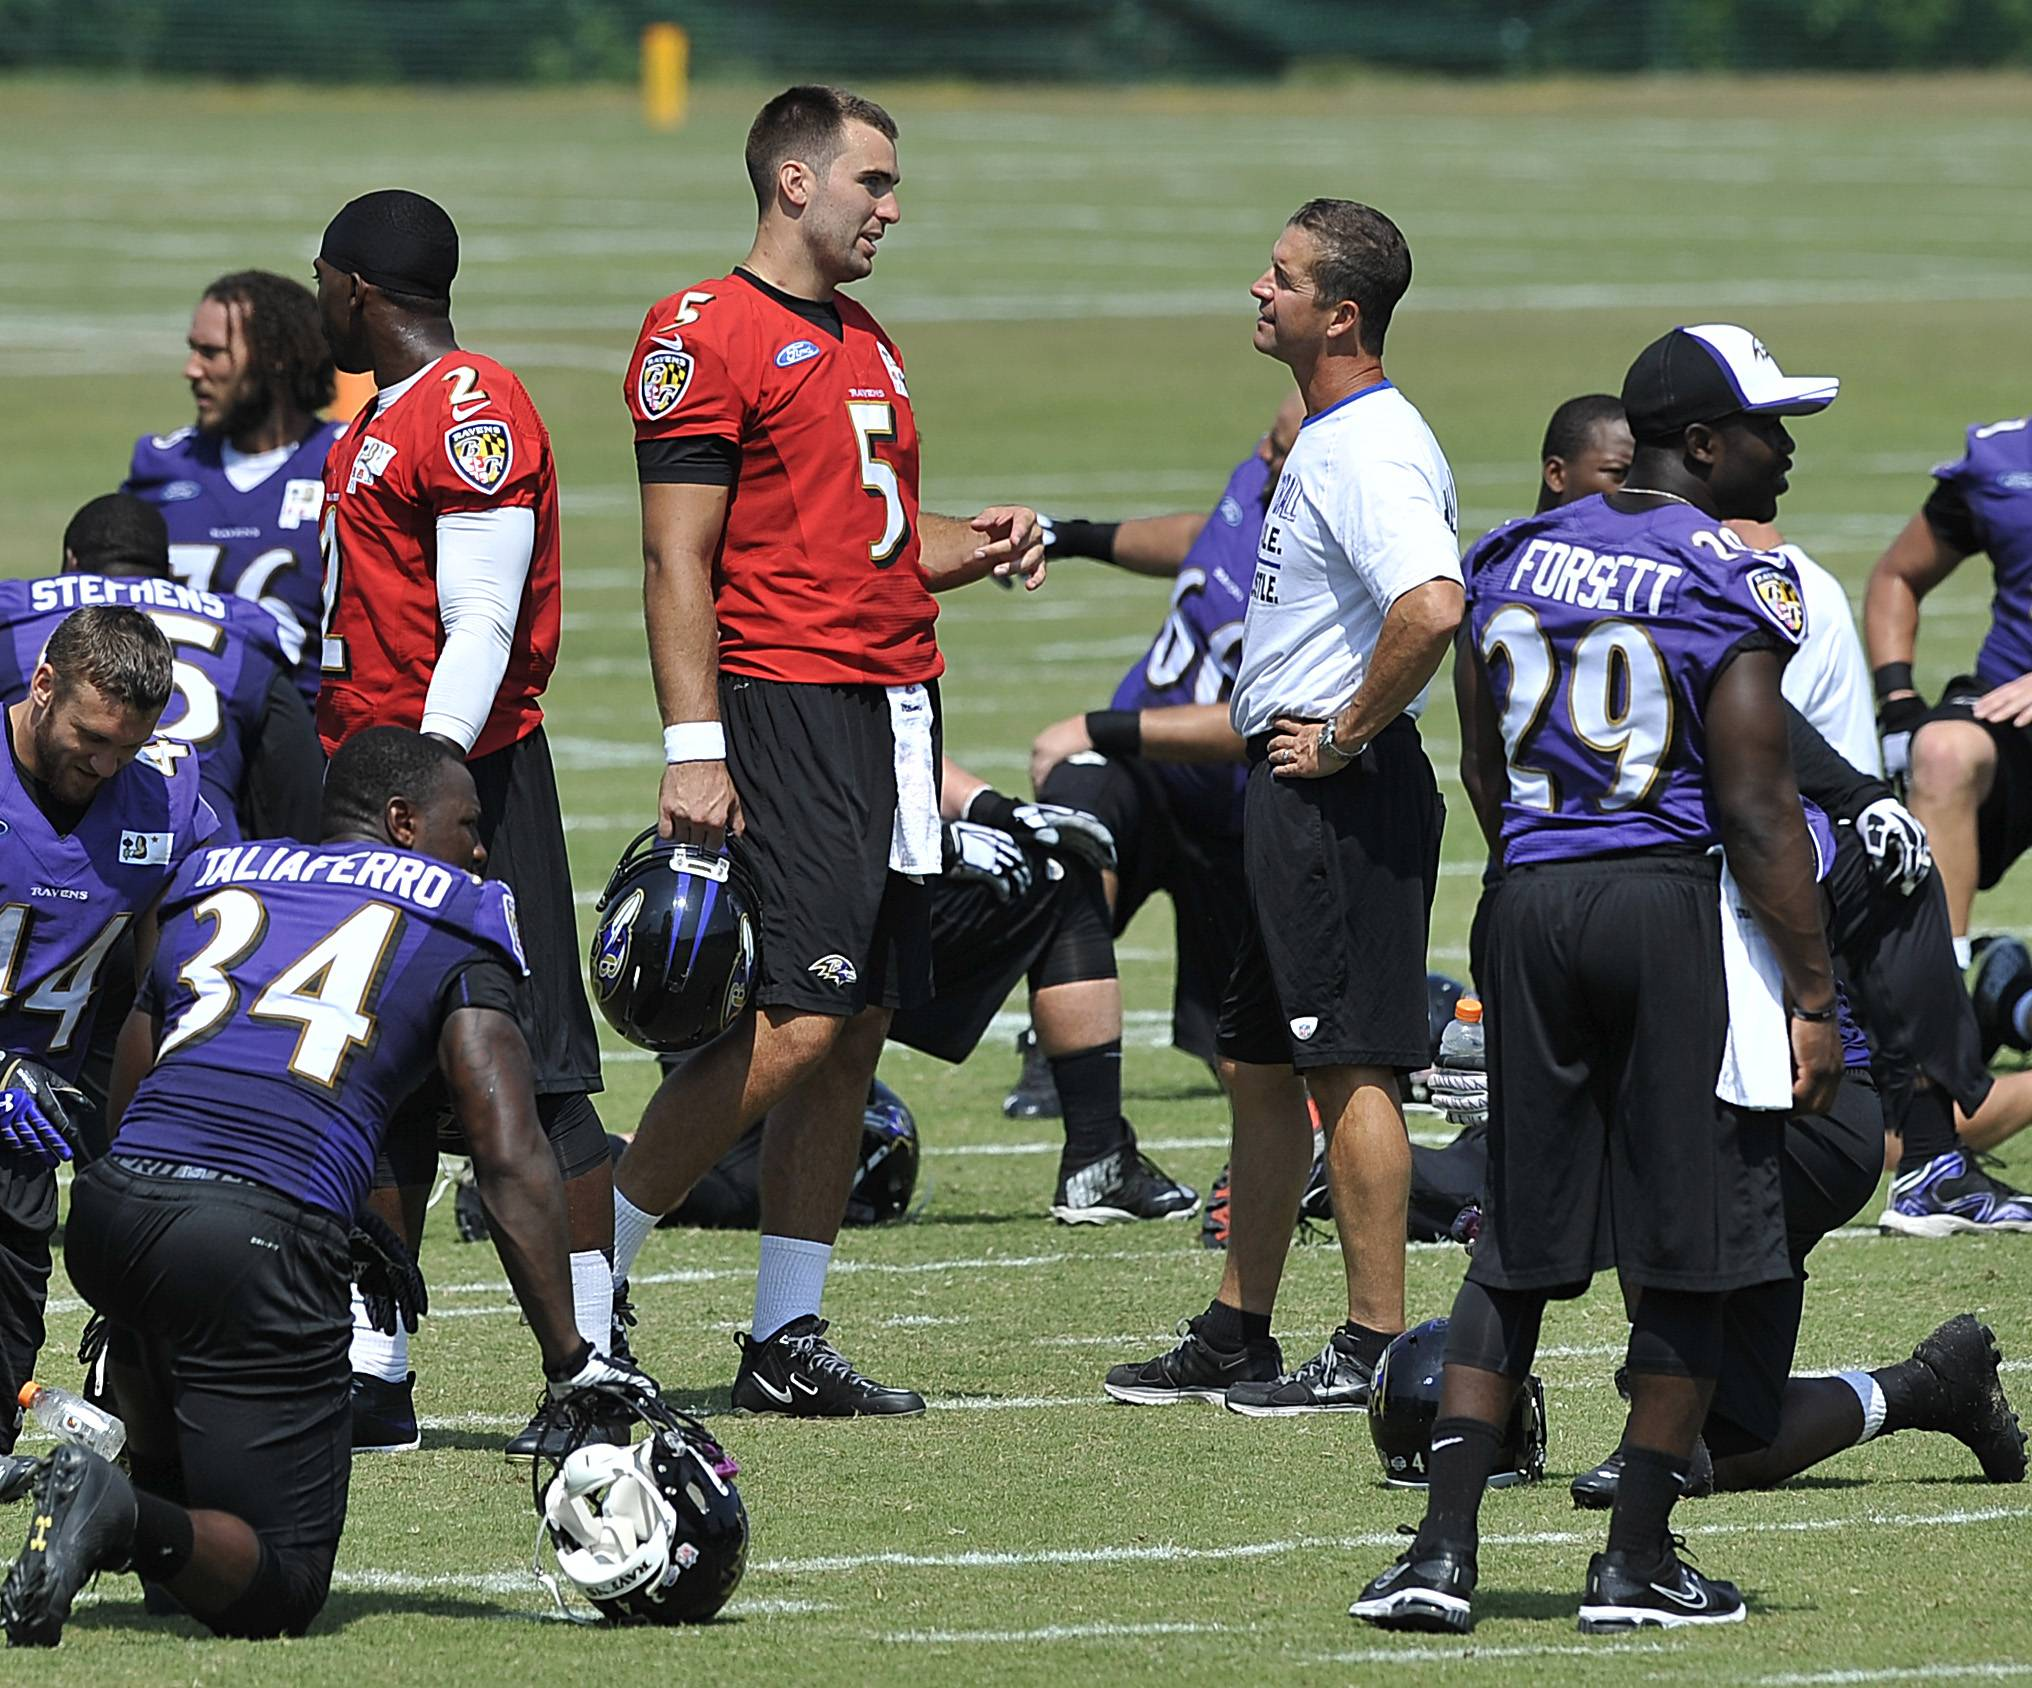 Baltimore Ravens quarterback Joe Flacco (5) talks with head coach John Harbaugh at the end of NFL football training camp practice, Thursday, July 31, 2014, in Owings Mills, Md.